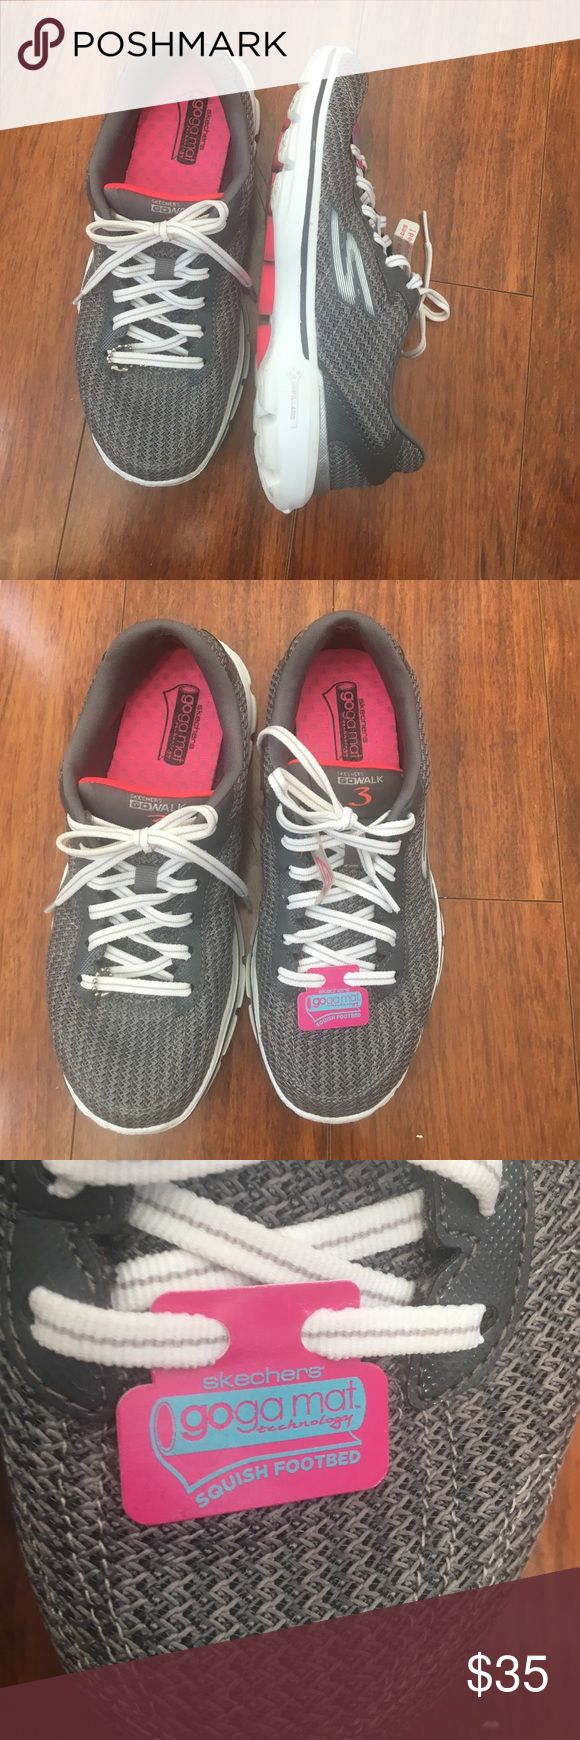 Memory  foam Skechers sneakers very comfy Memory  foam Skechers sneakers very comfy like new I only wore it couple of time  a little tight since I wear size 61/2 other wise in an excellent condition Skechers Shoes Sneakers